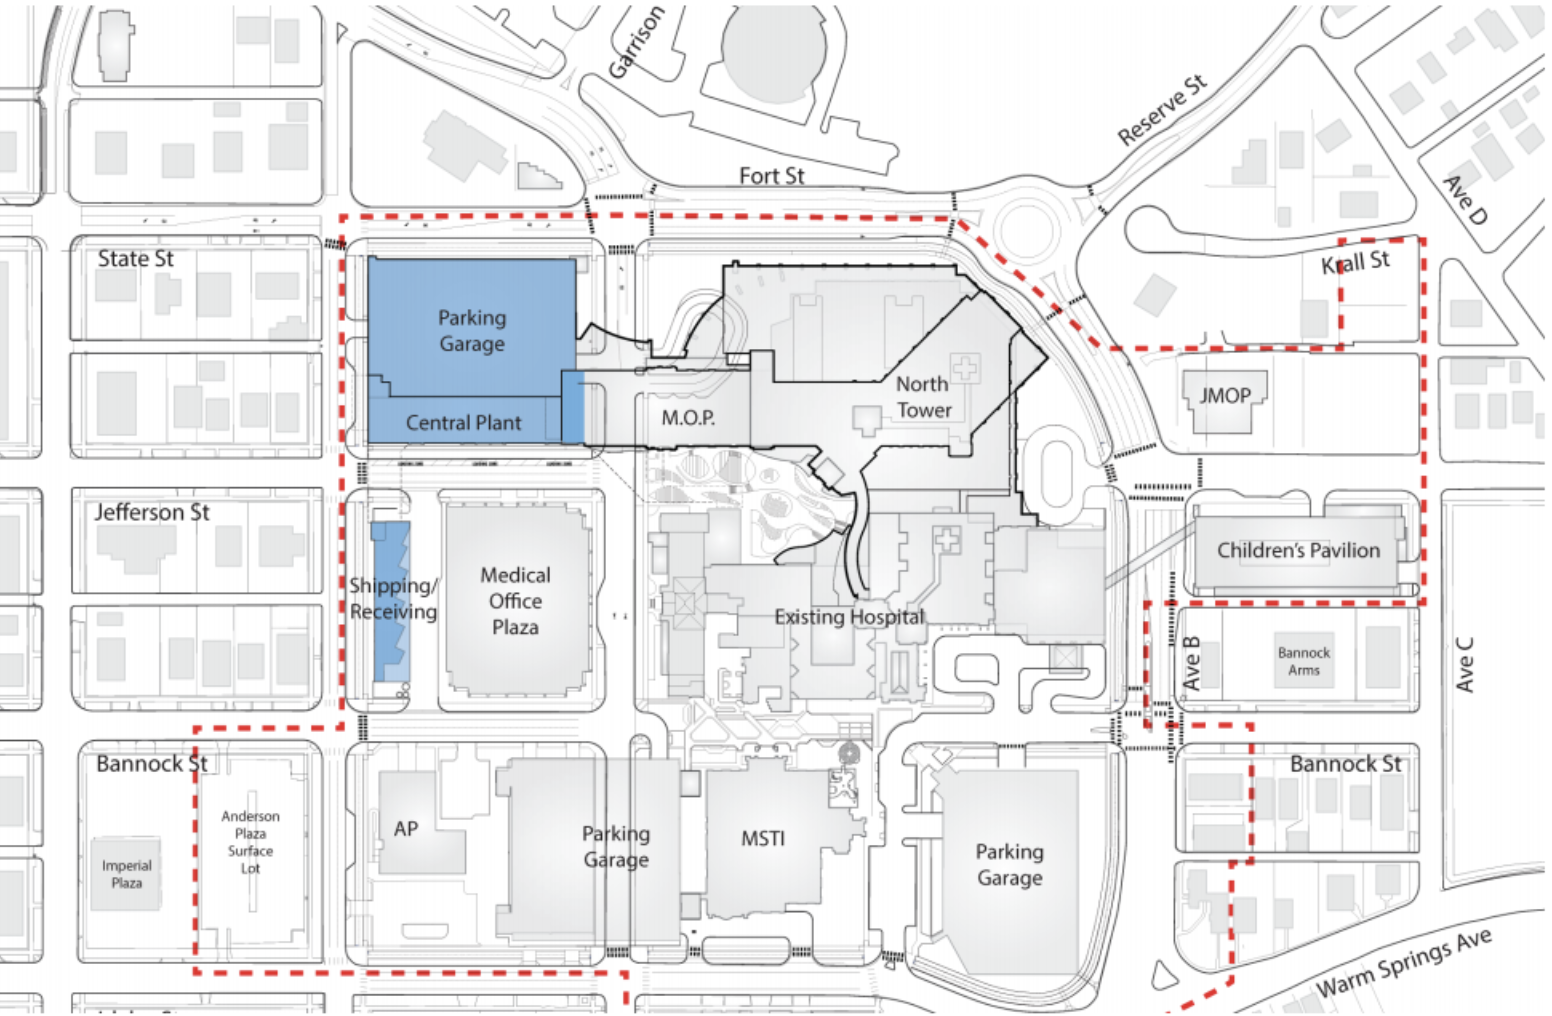 Site plan. New buildings in blue. Courtesy St. Luke's Health System.